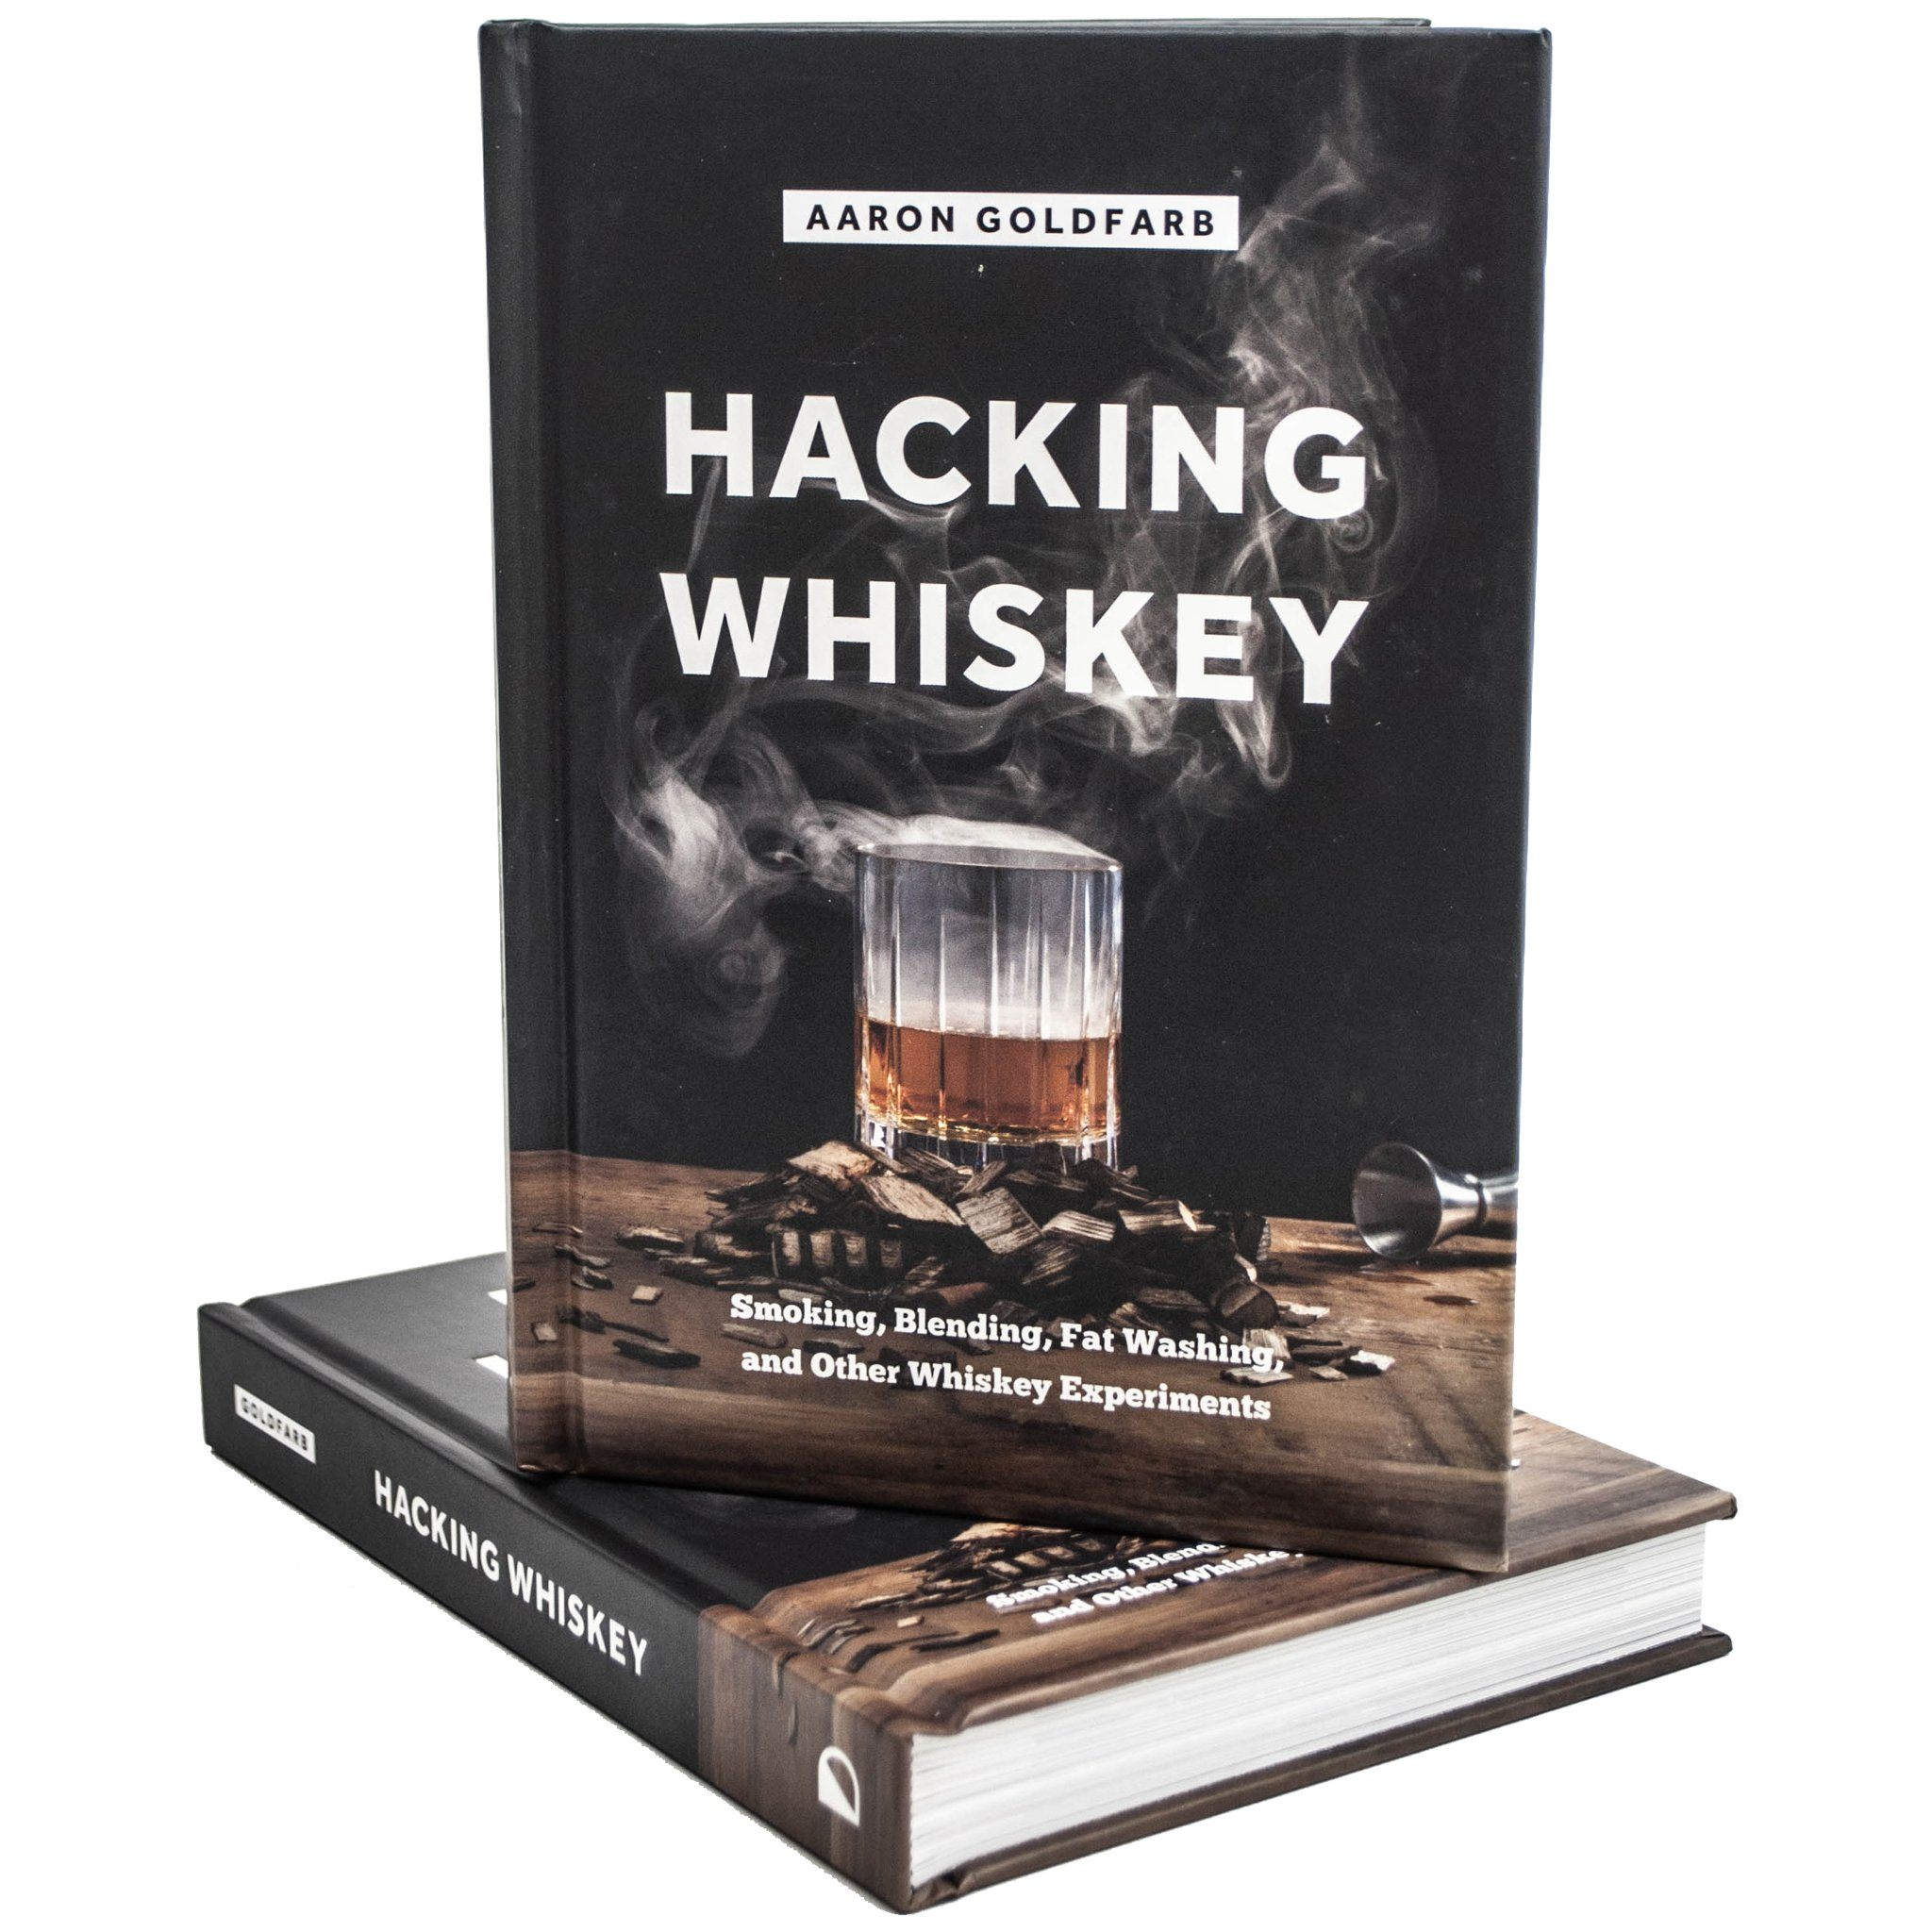 Hacking Whiskey: Smoking, Blending, Fat Washing, and Other Whiskey Experiments - Bourbon Outfitter